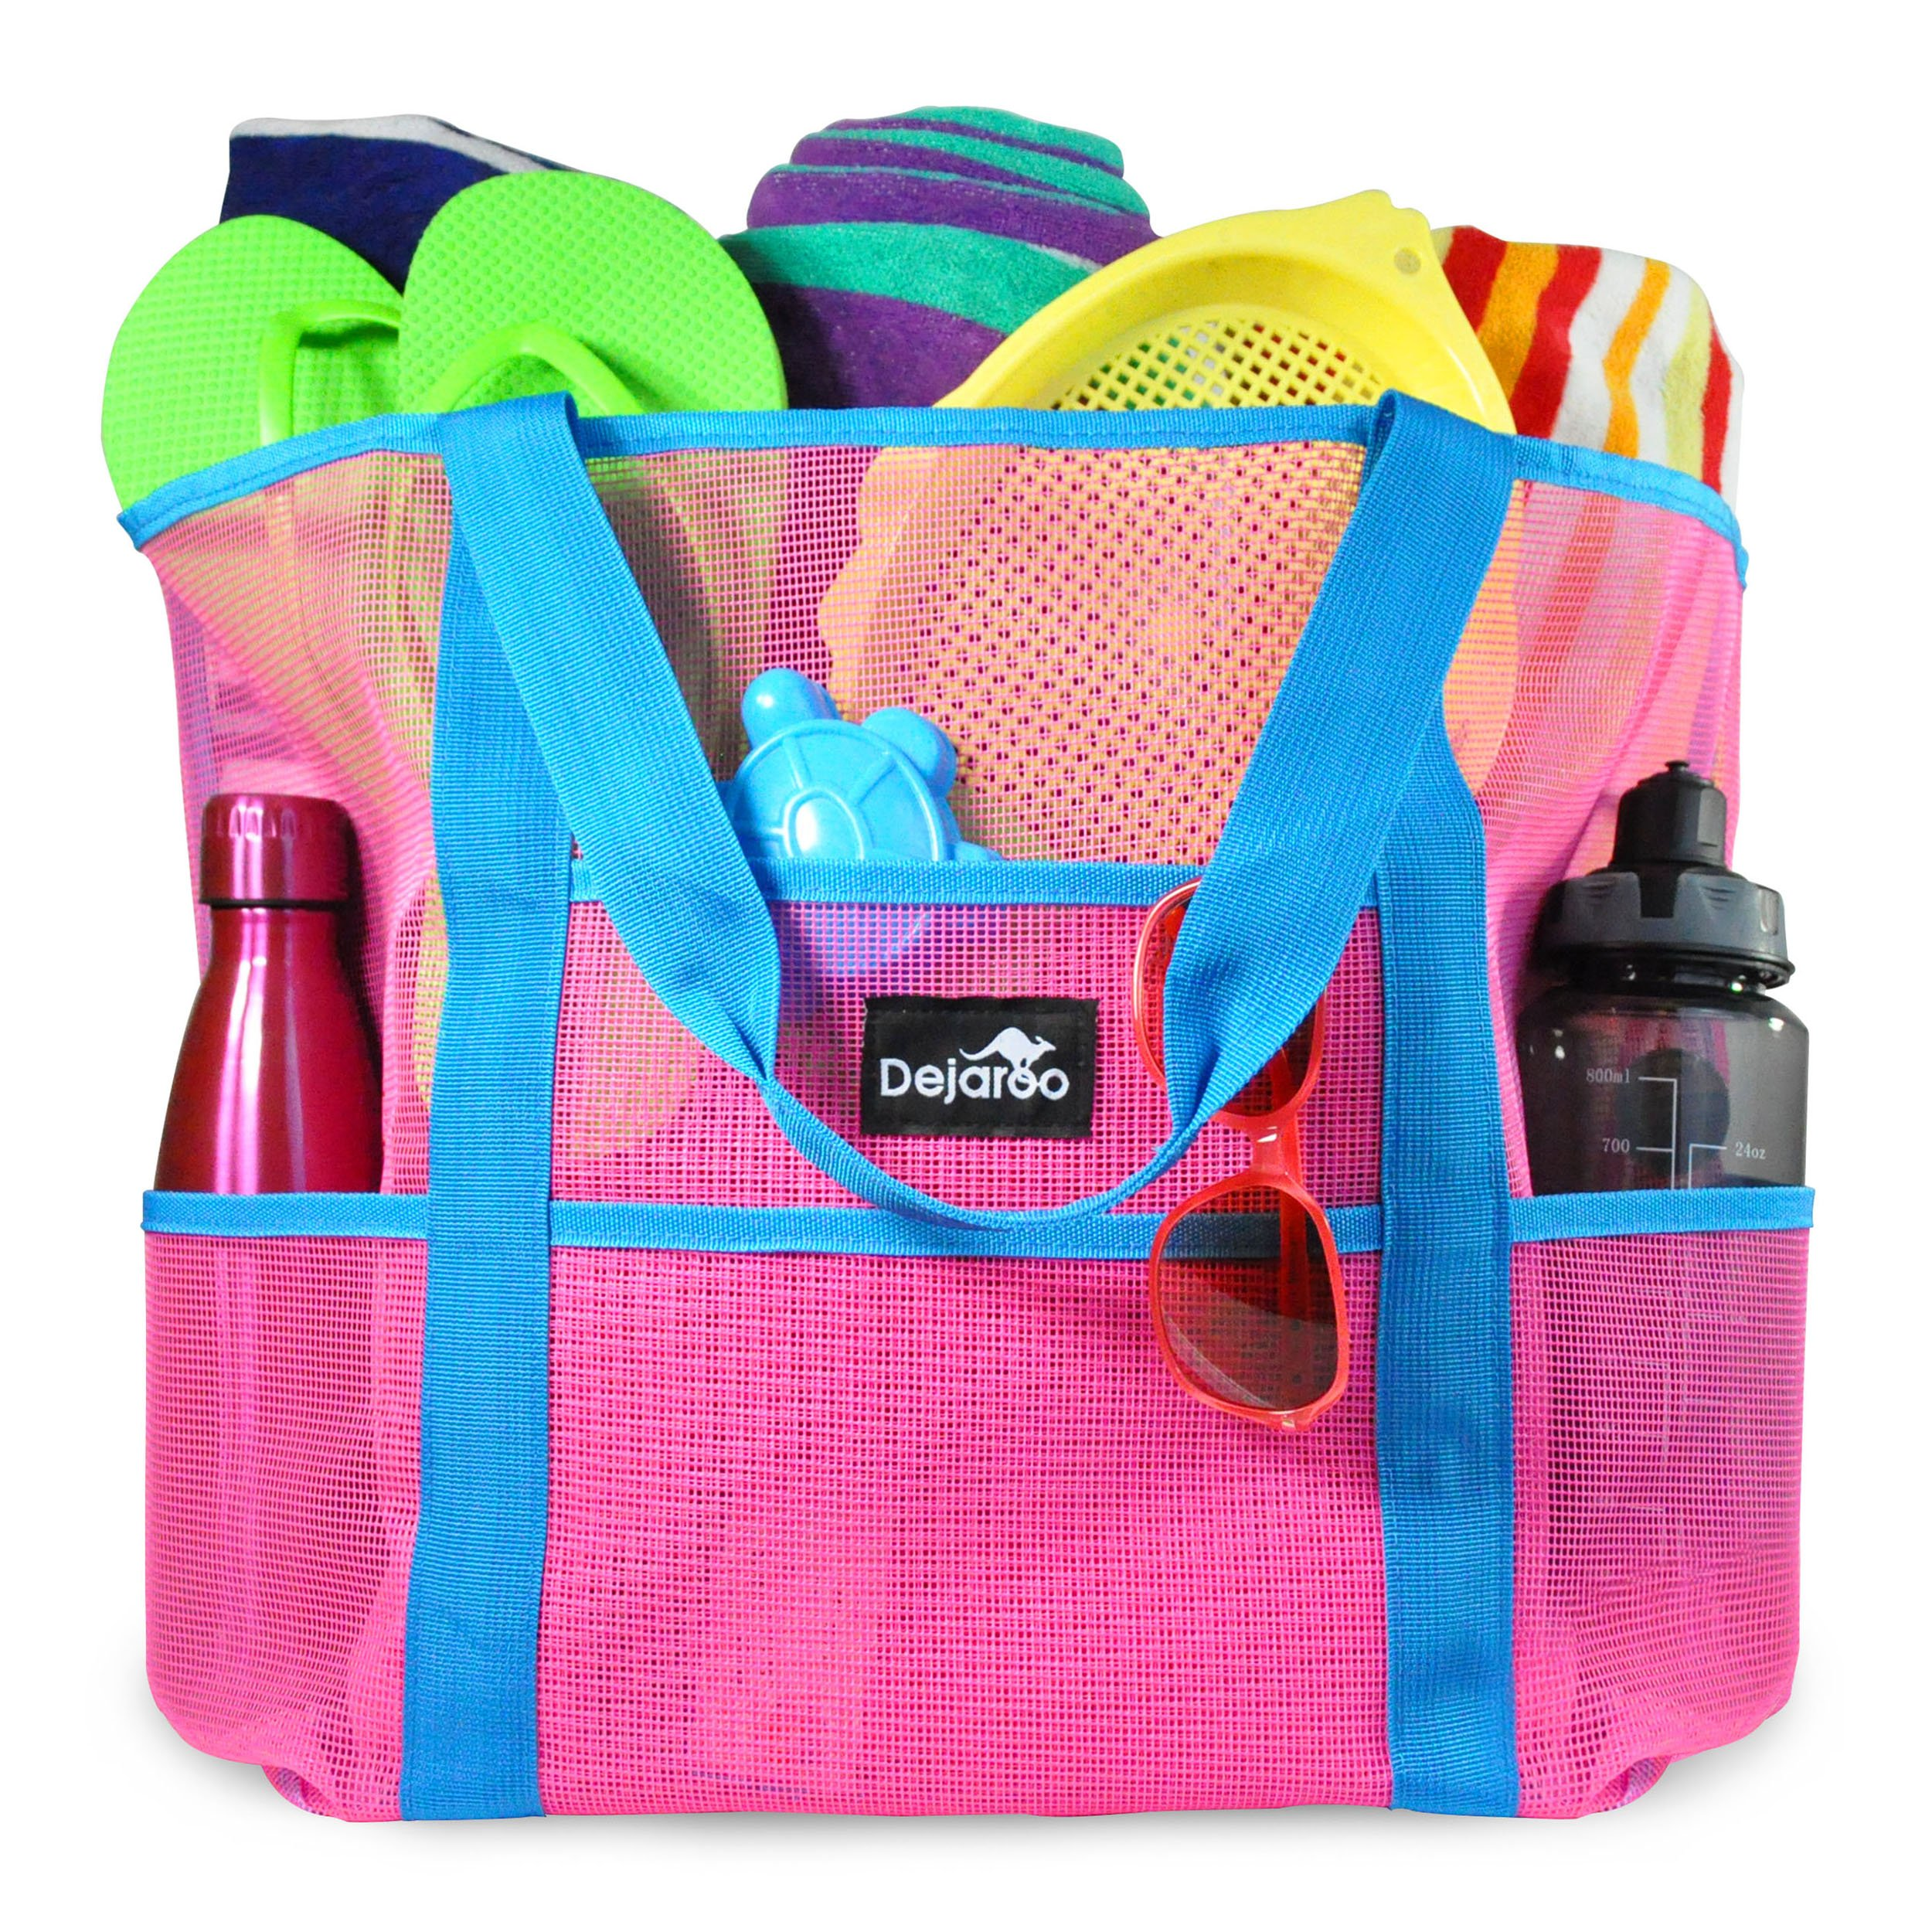 Dejaroo Mesh Beach Bag – Toy Tote Bag – Large Lightweight Market, Grocery & Picnic Tote with Oversized Pockets (Pink with Aqua Handles)